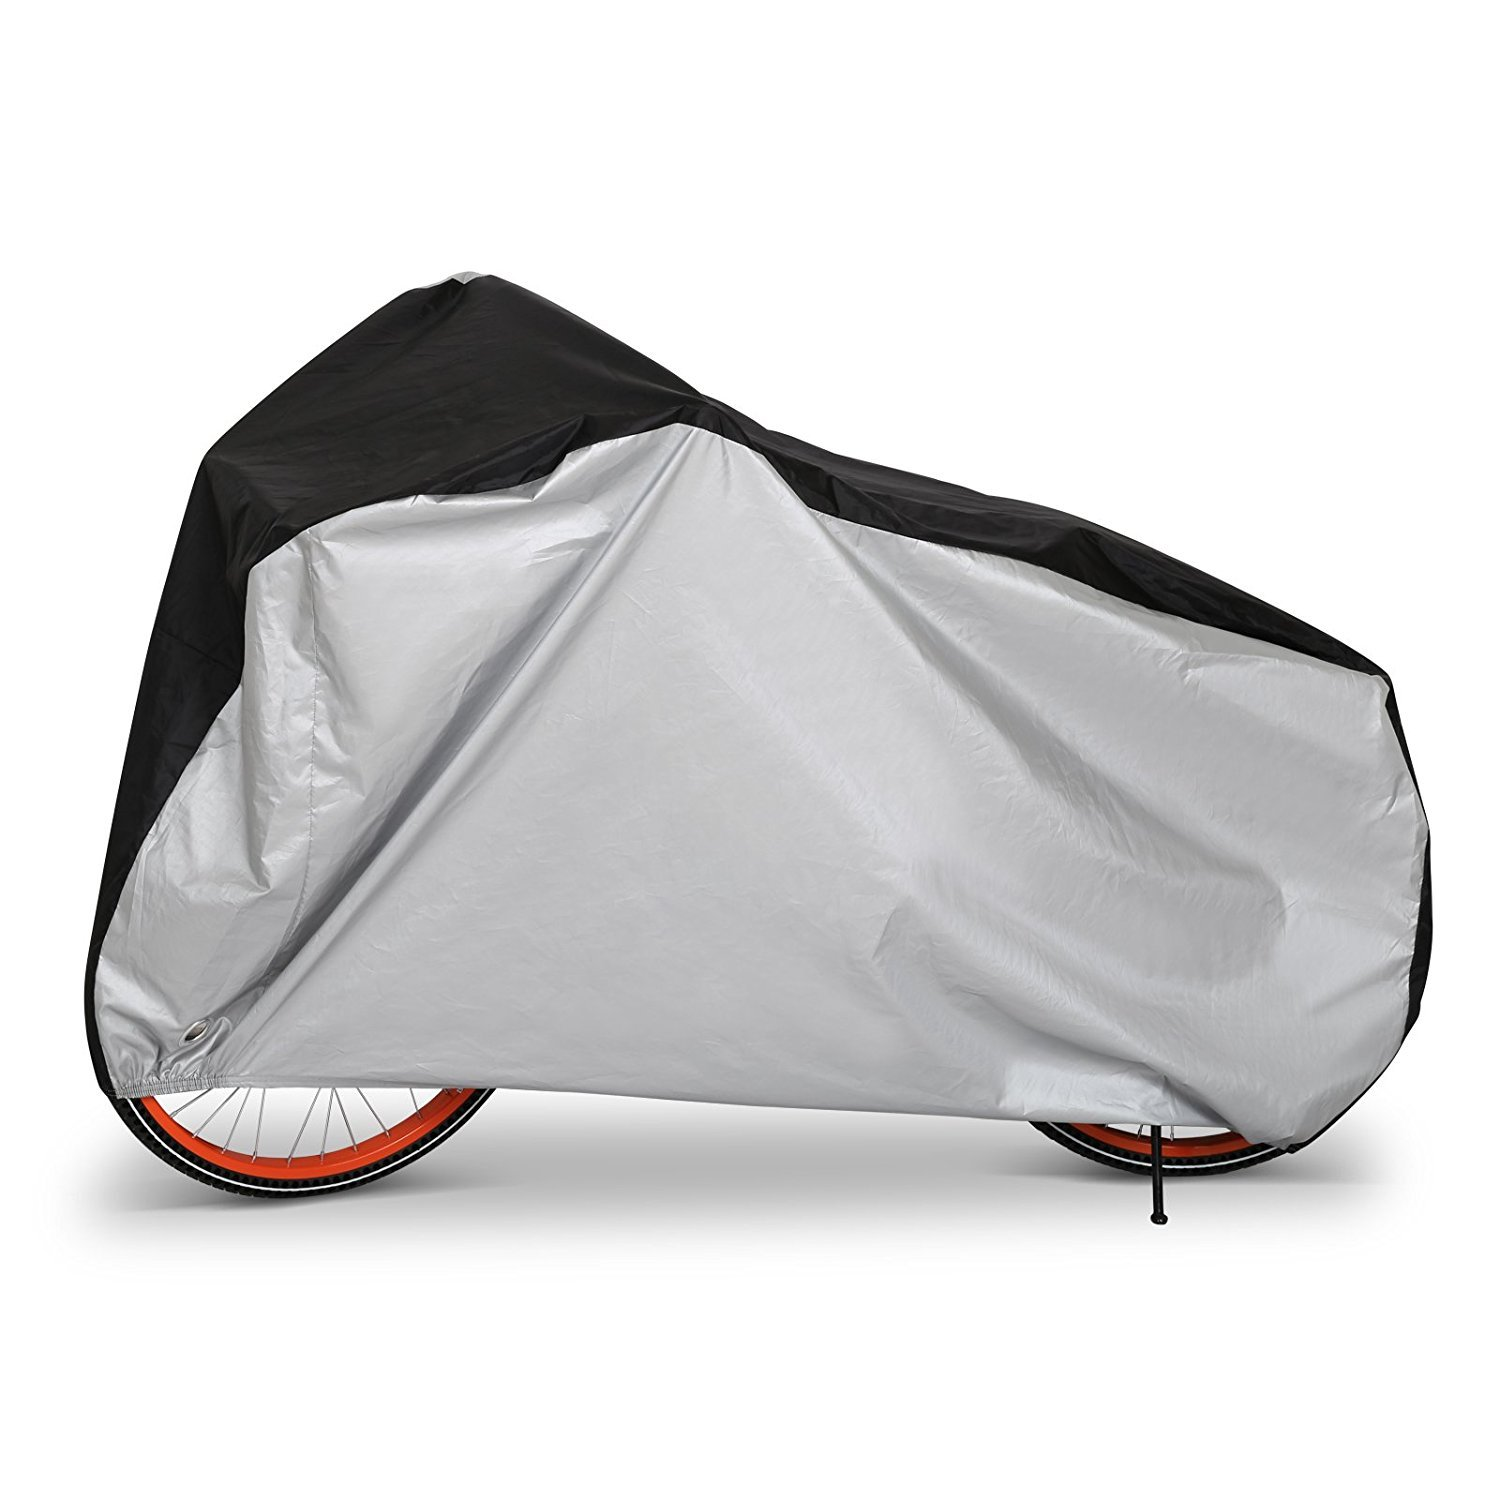 LIHAO Waterproof Bike Cover Outdoor Bicycle Cover Snow Rain Dust Sun Protector